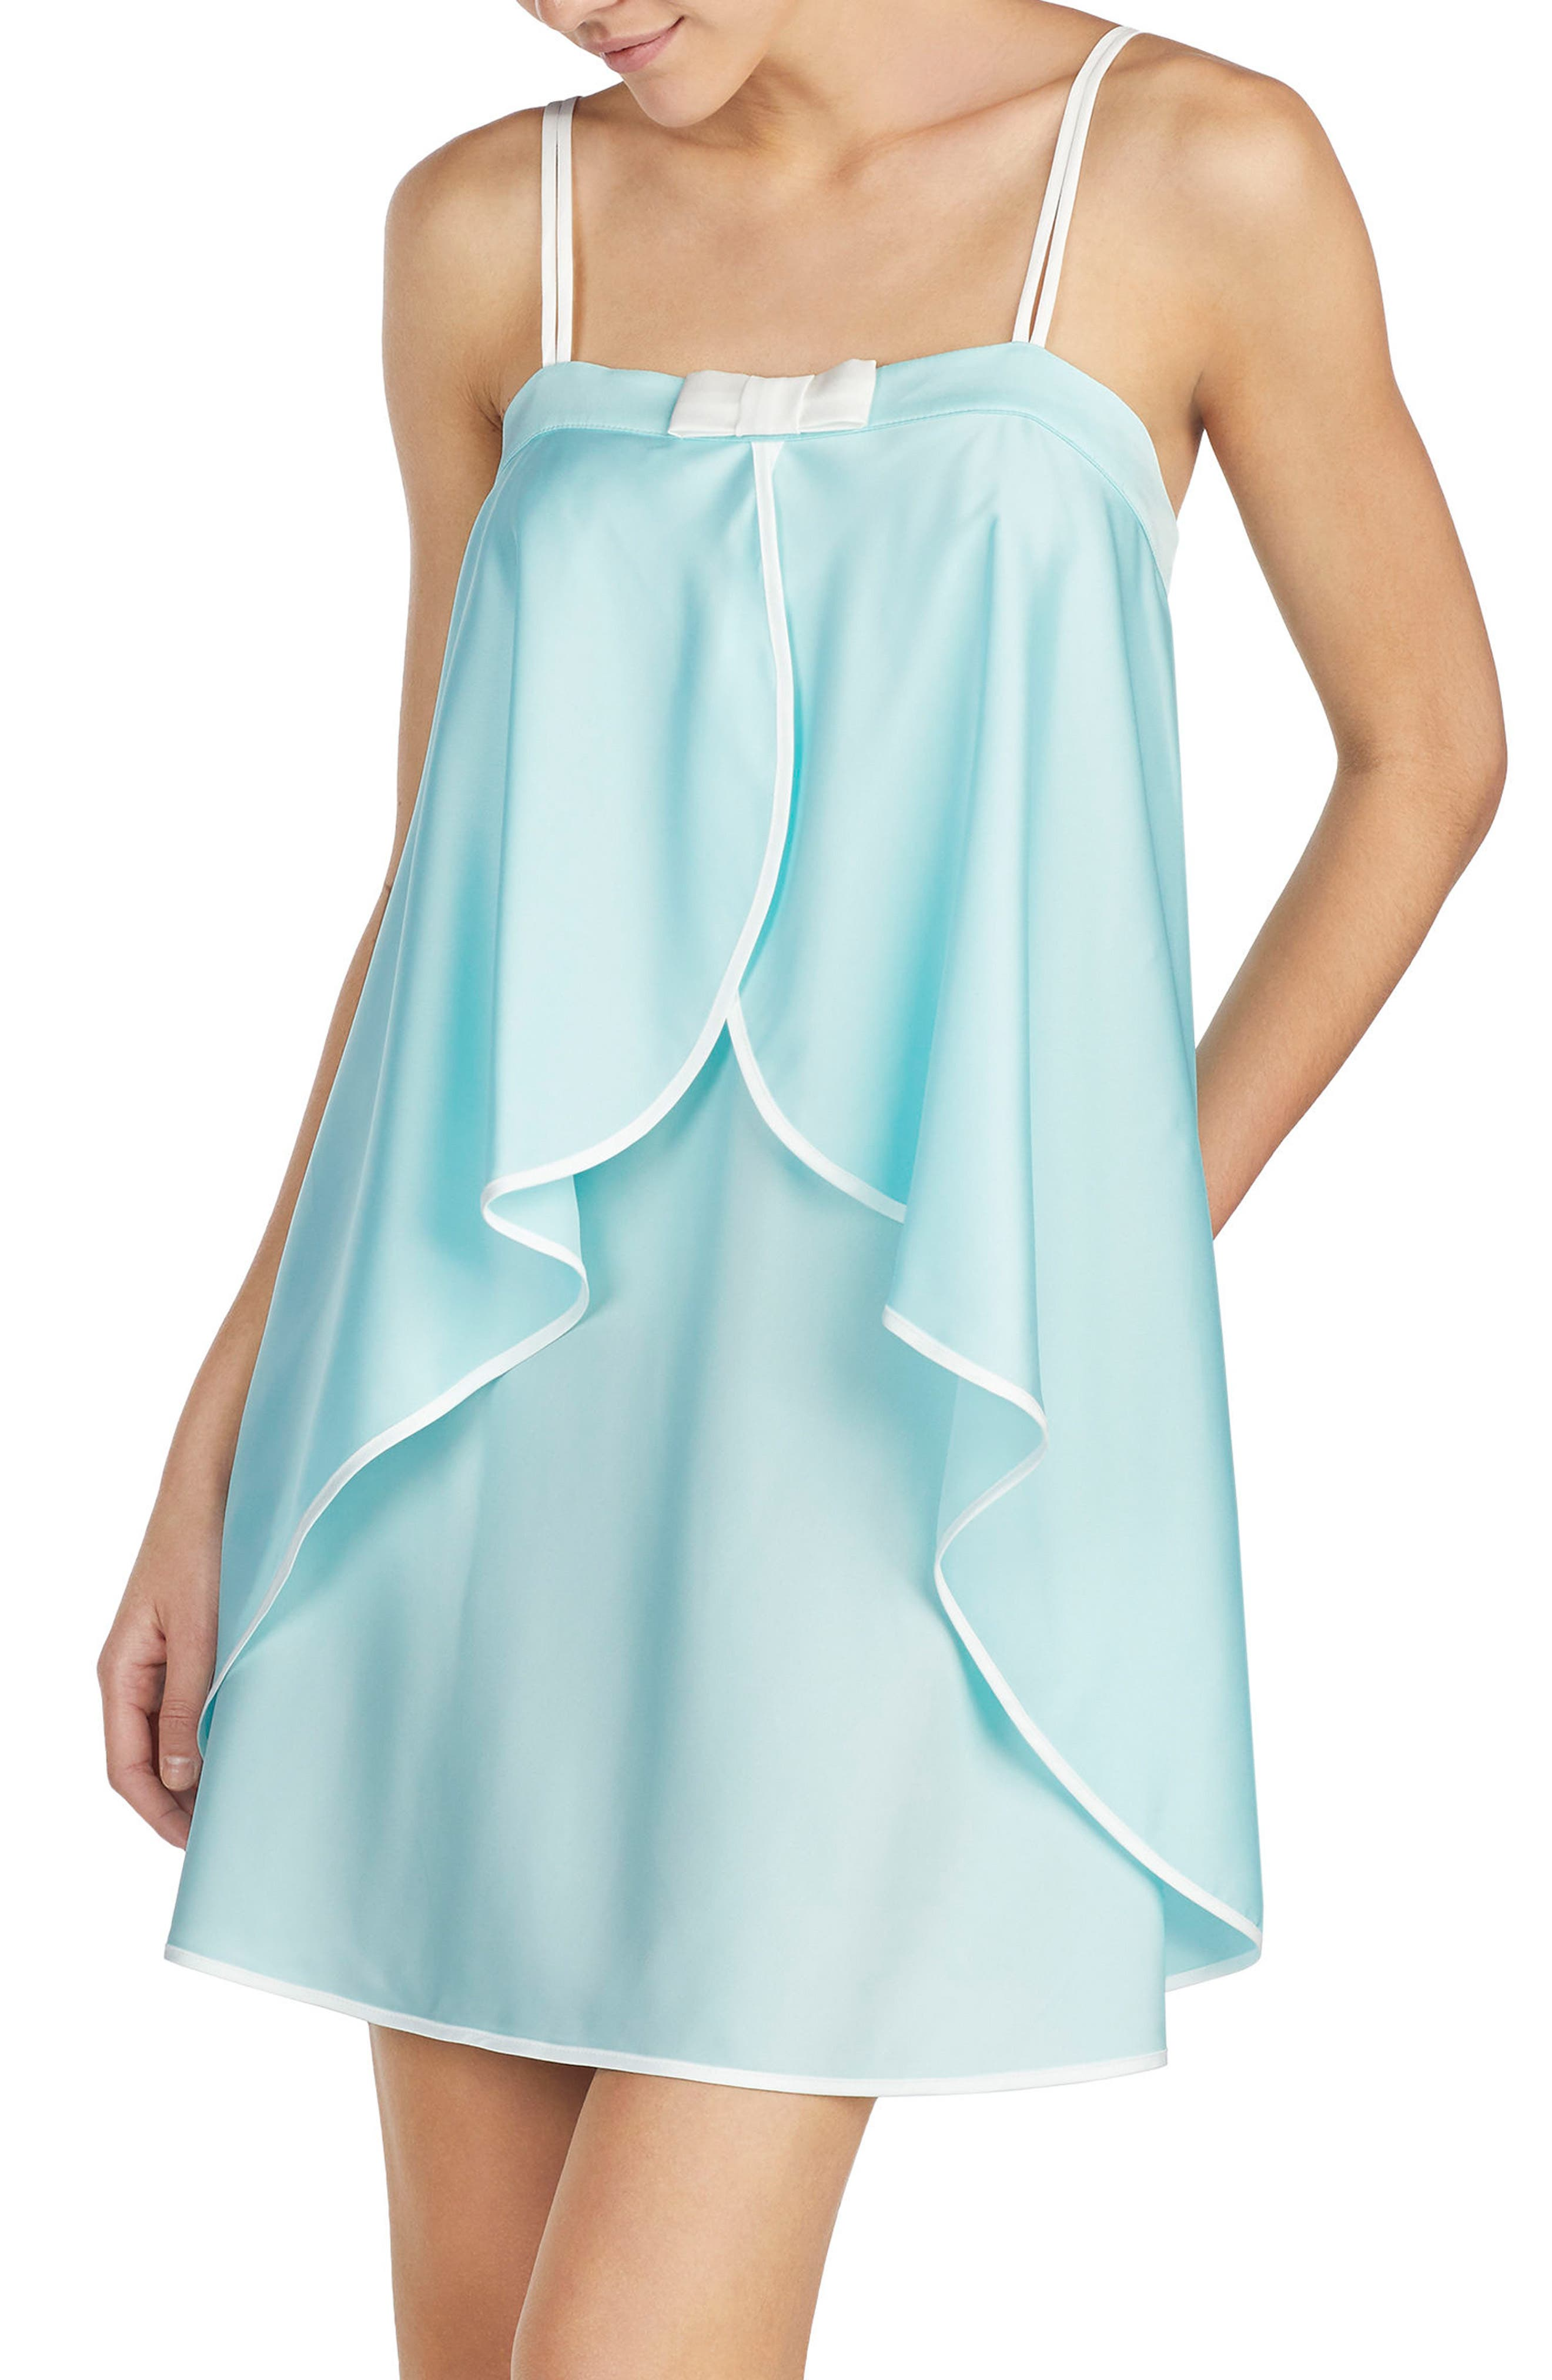 Alternate Image 1 Selected - kate spade new york charmeuse chemise